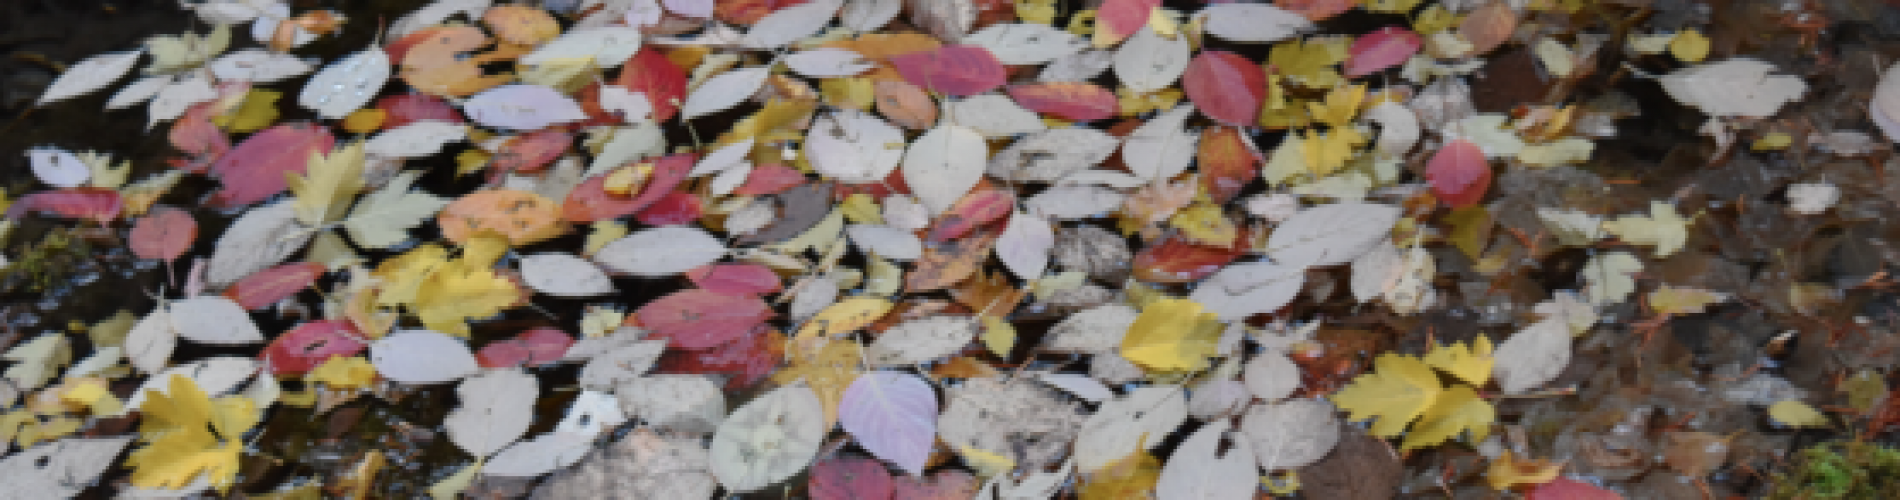 Fall Leaves - The Beauty of Change